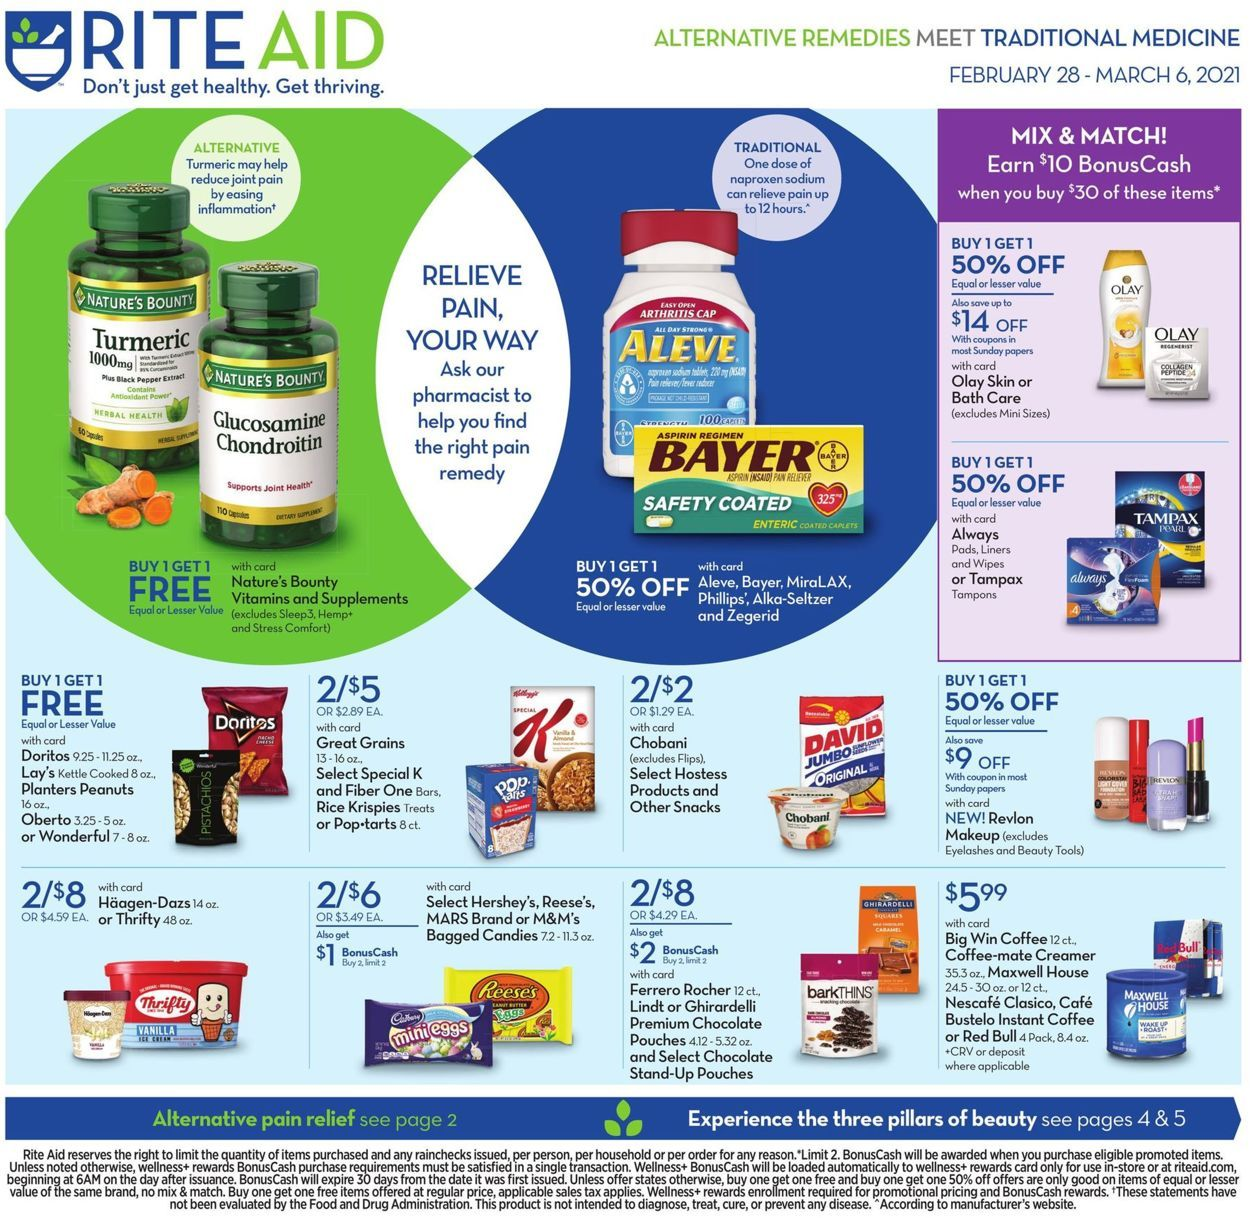 Rite Aid Weekly Ad Feb 28 Mar 6 2021 In 2021 Online Coupons Codes Online Coupons Rite Aid